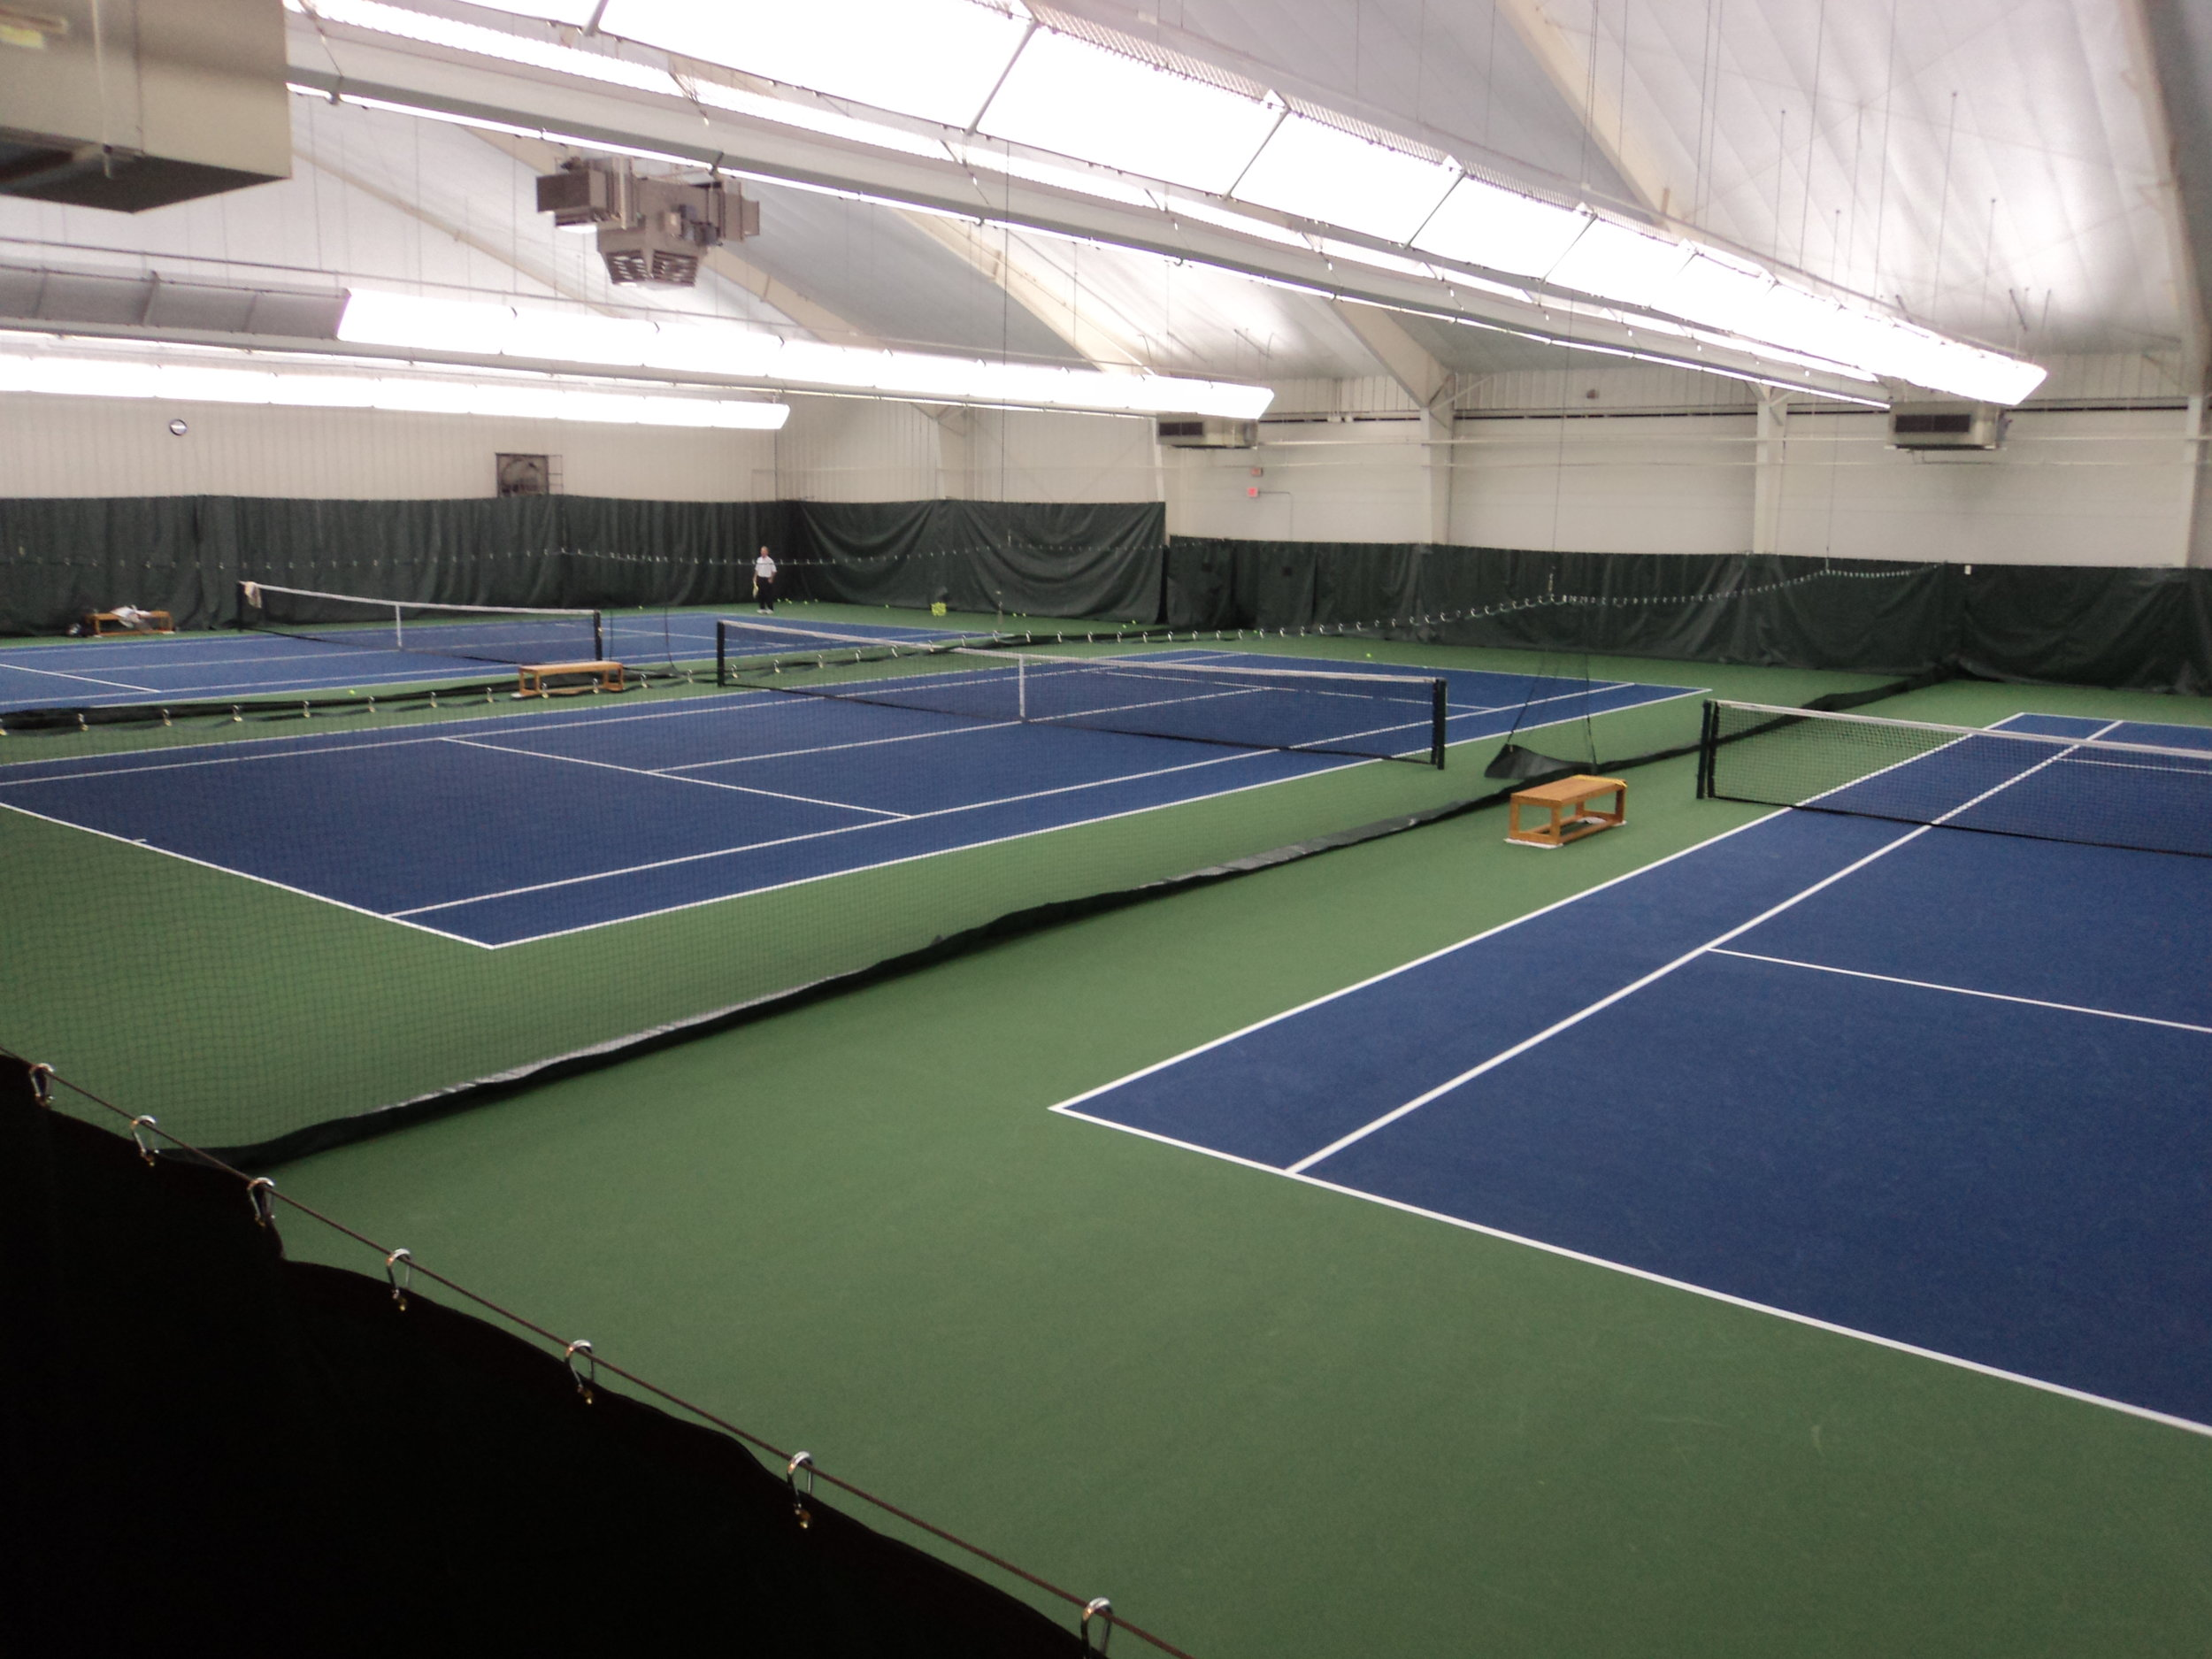 Baseline Sports Construction received an Indoor Tennis Facility of the Year Award in 2011for work on the indoor tennis facility at Belle Meade Country Club in Nashville, TN. The project consisted of digging out 8 existing flood damaged tennis courts with an asphalt base and replacing them with a post tension concrete base and cushioned acrylic surface. The project also included new backdrop and divider curtains, column pads, and net posts. -